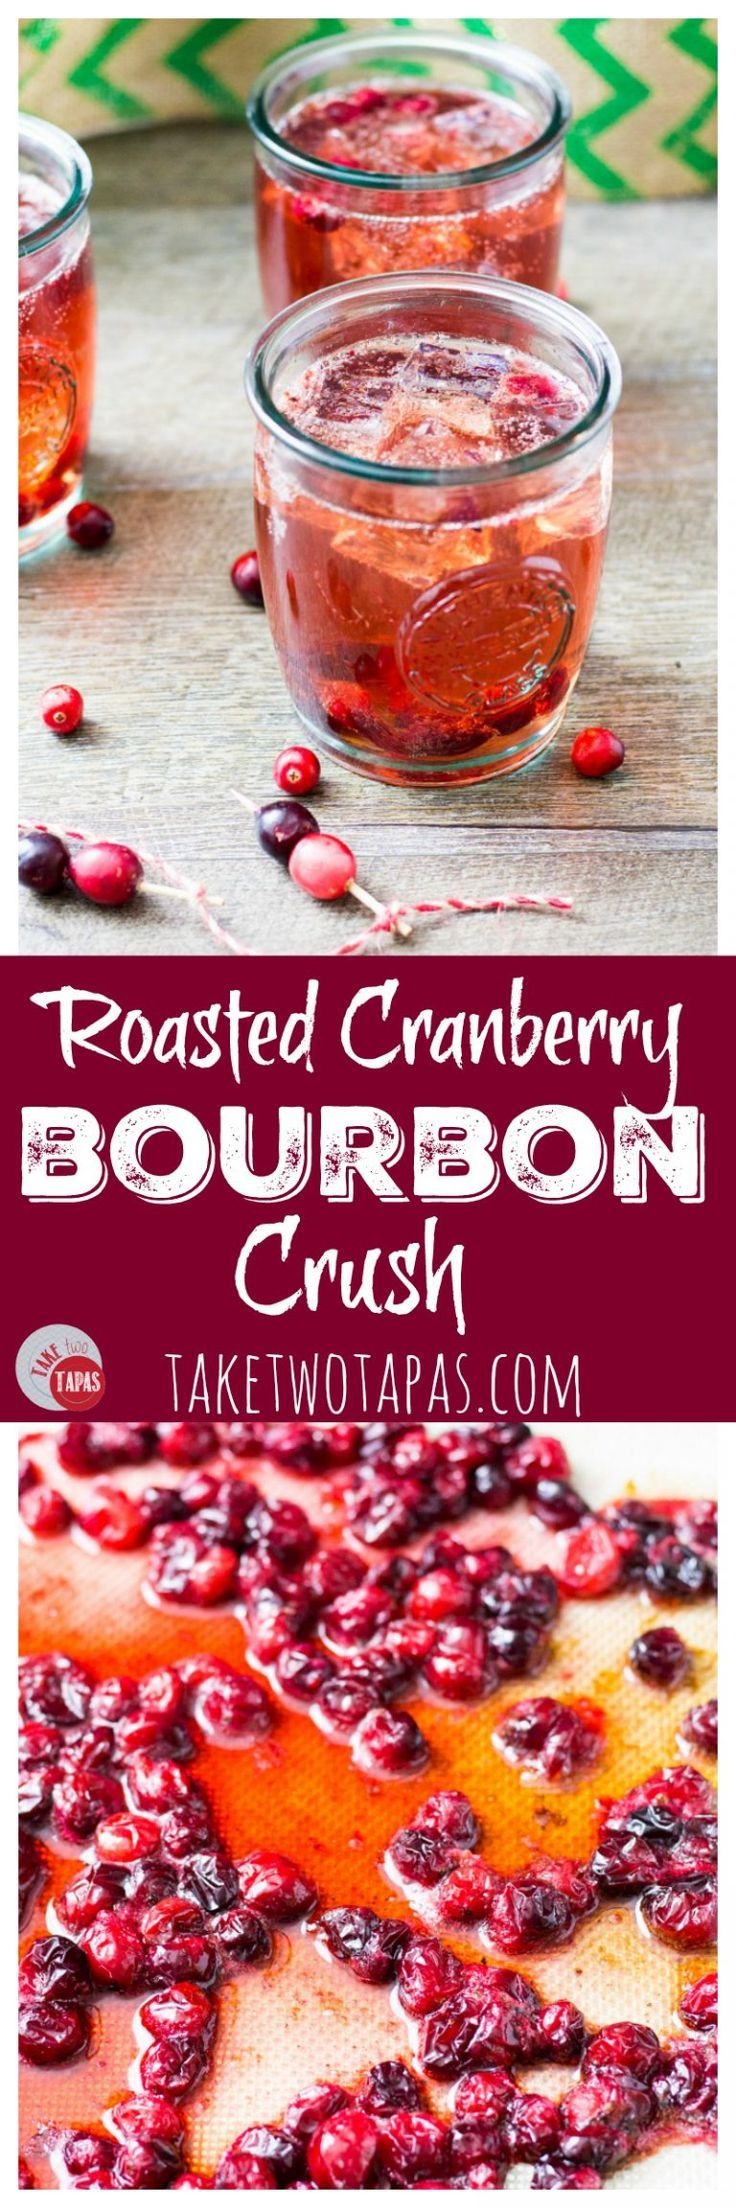 Roasted cranberries pair nicely with tart cranberry juice, caramel hinted bourbon, and bubbly lemon-lime soda. Perfect a large batch of punch! Roasted Cranberry Bourbon Crush Recipe | Take Two Tapas